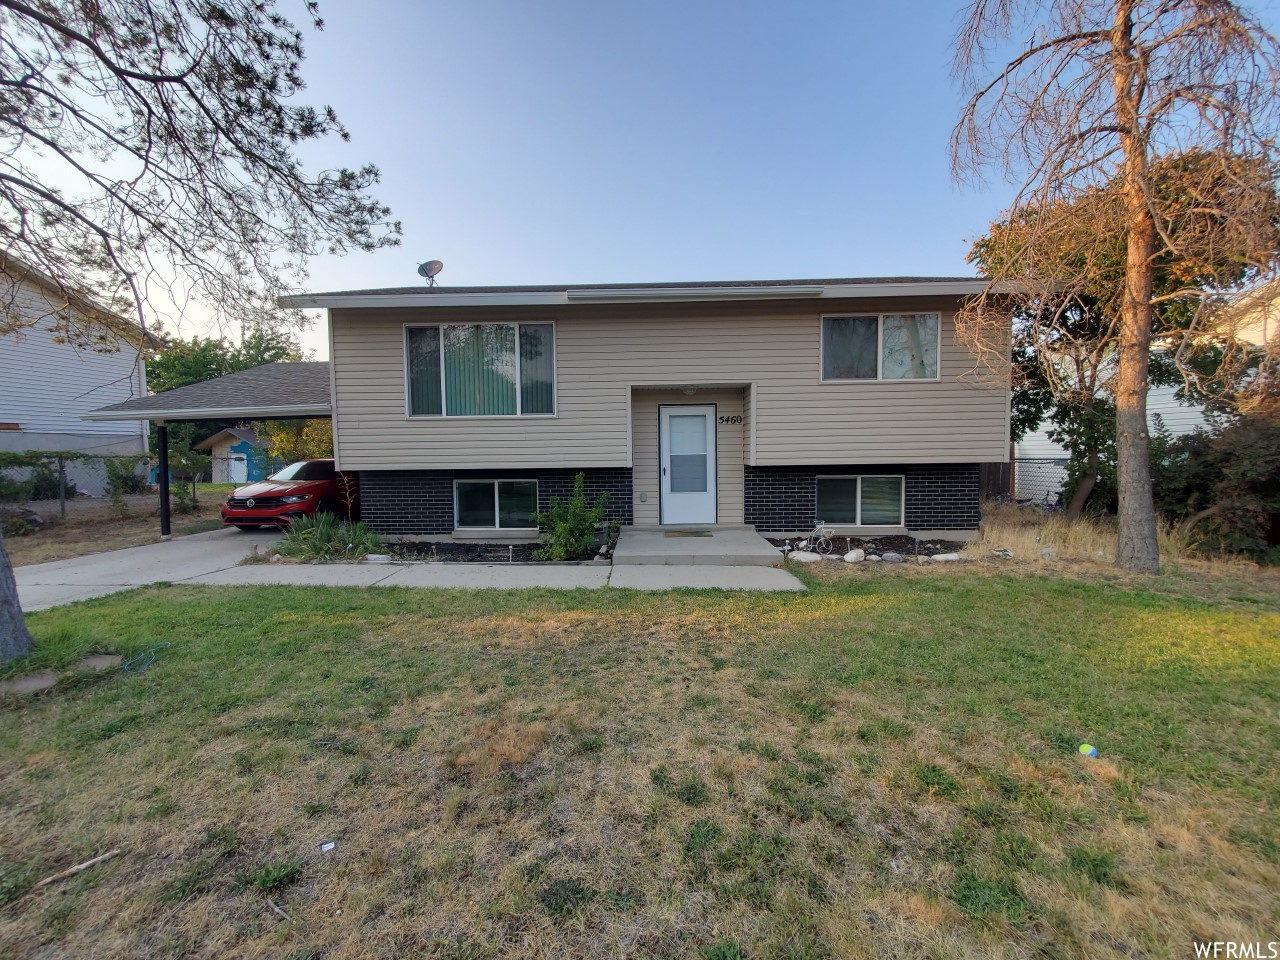 5460 W PLANADA WAY, Salt Lake City UT 84118